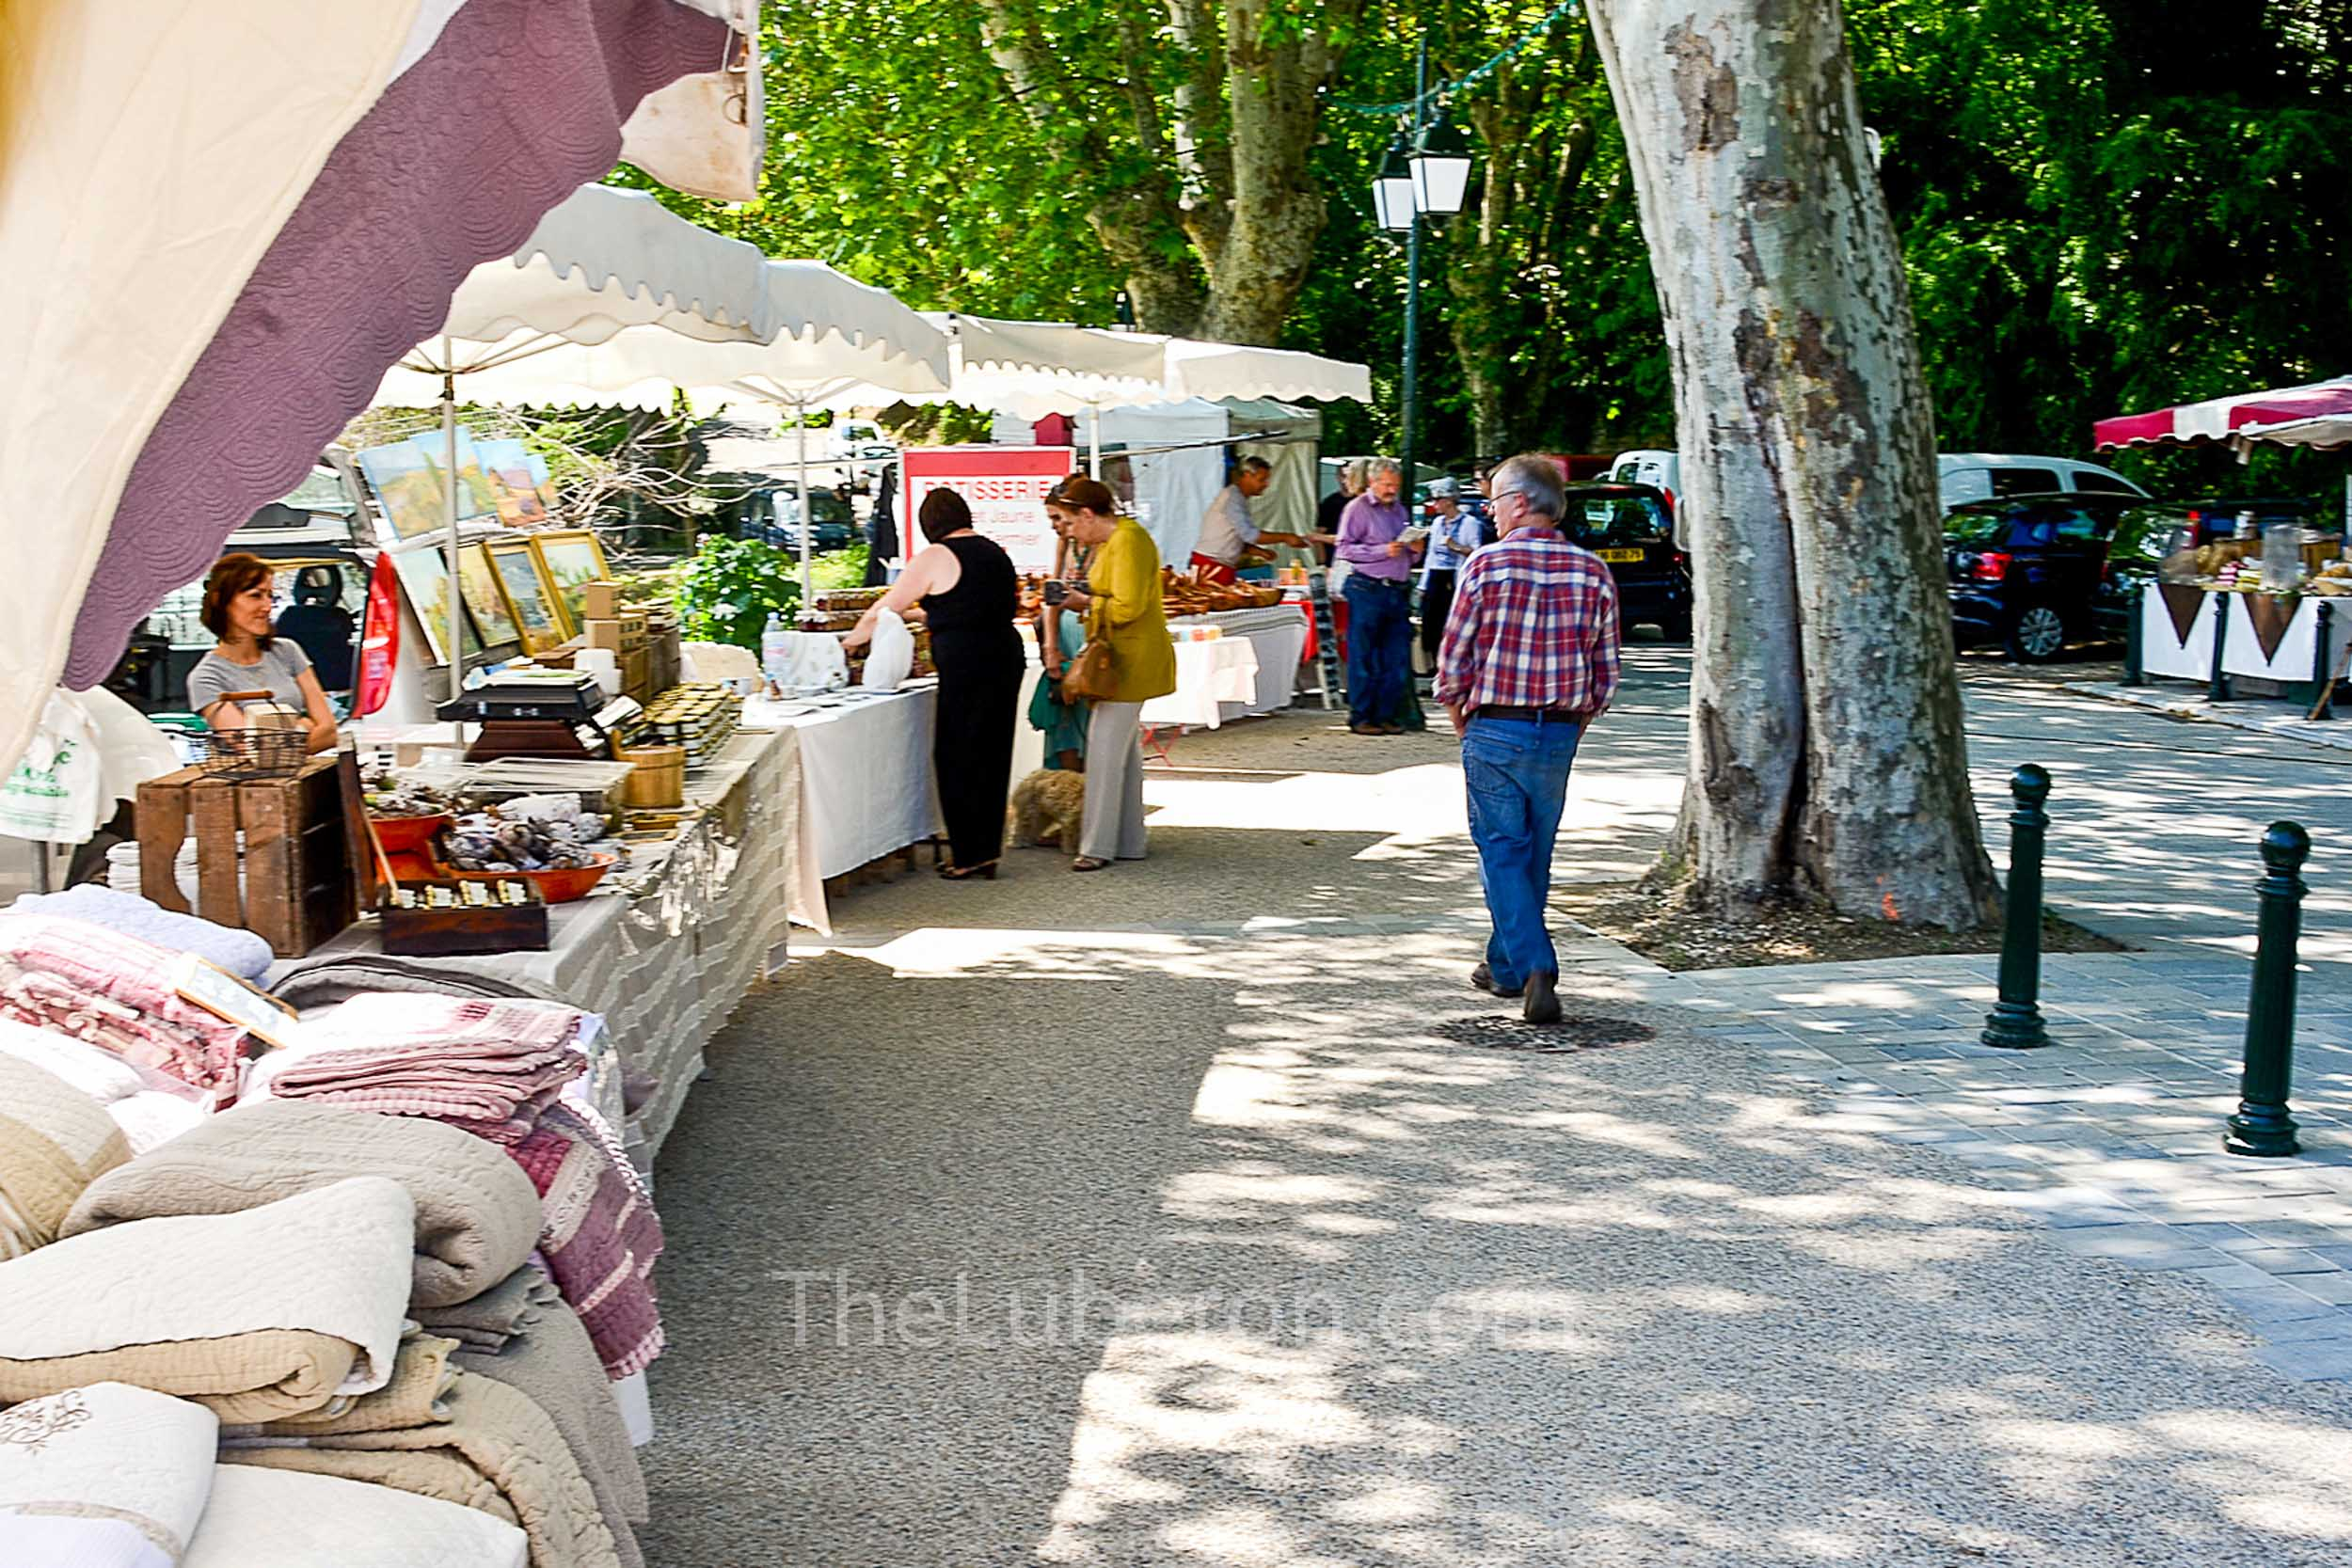 The market in the streets of Menerbes